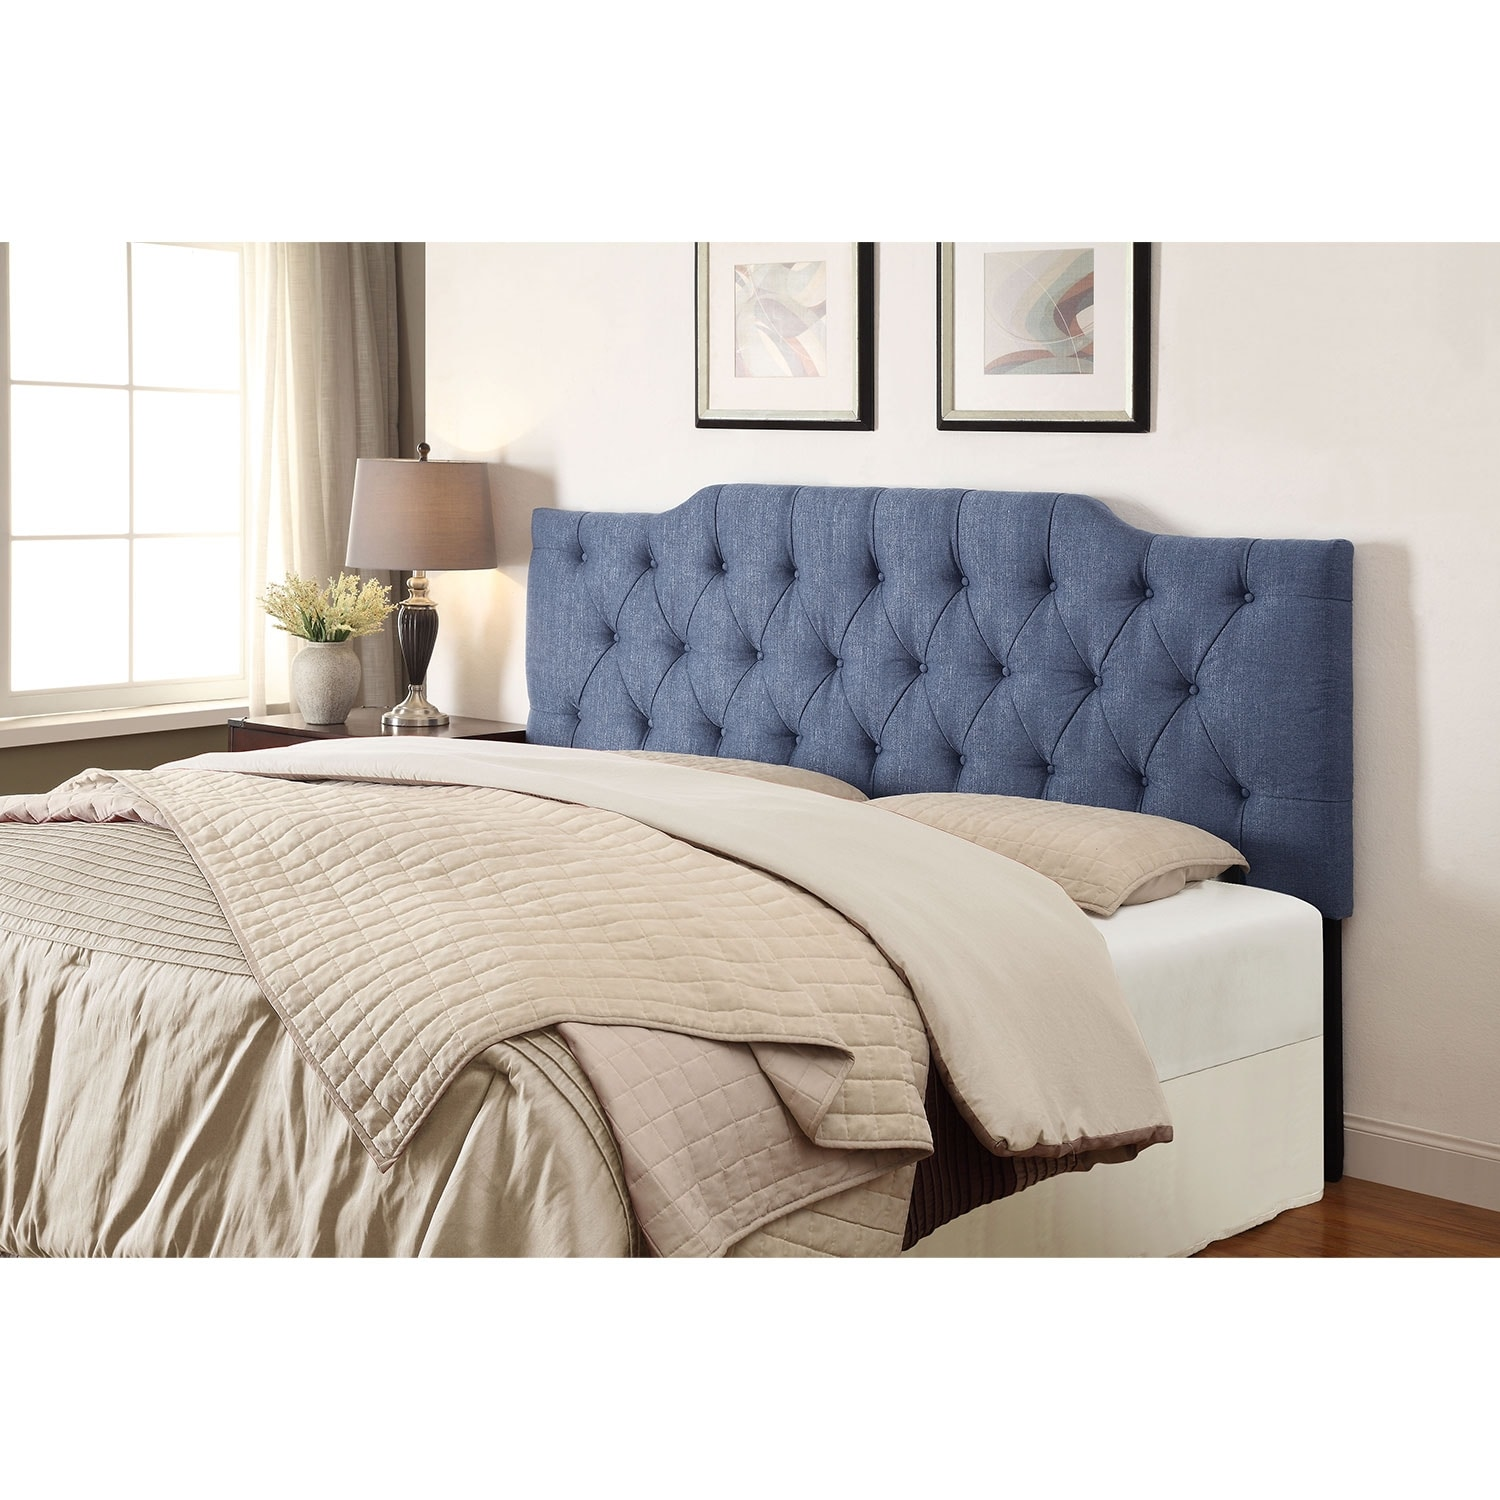 Bedroom Furniture - Smith Full/Queen Headboard